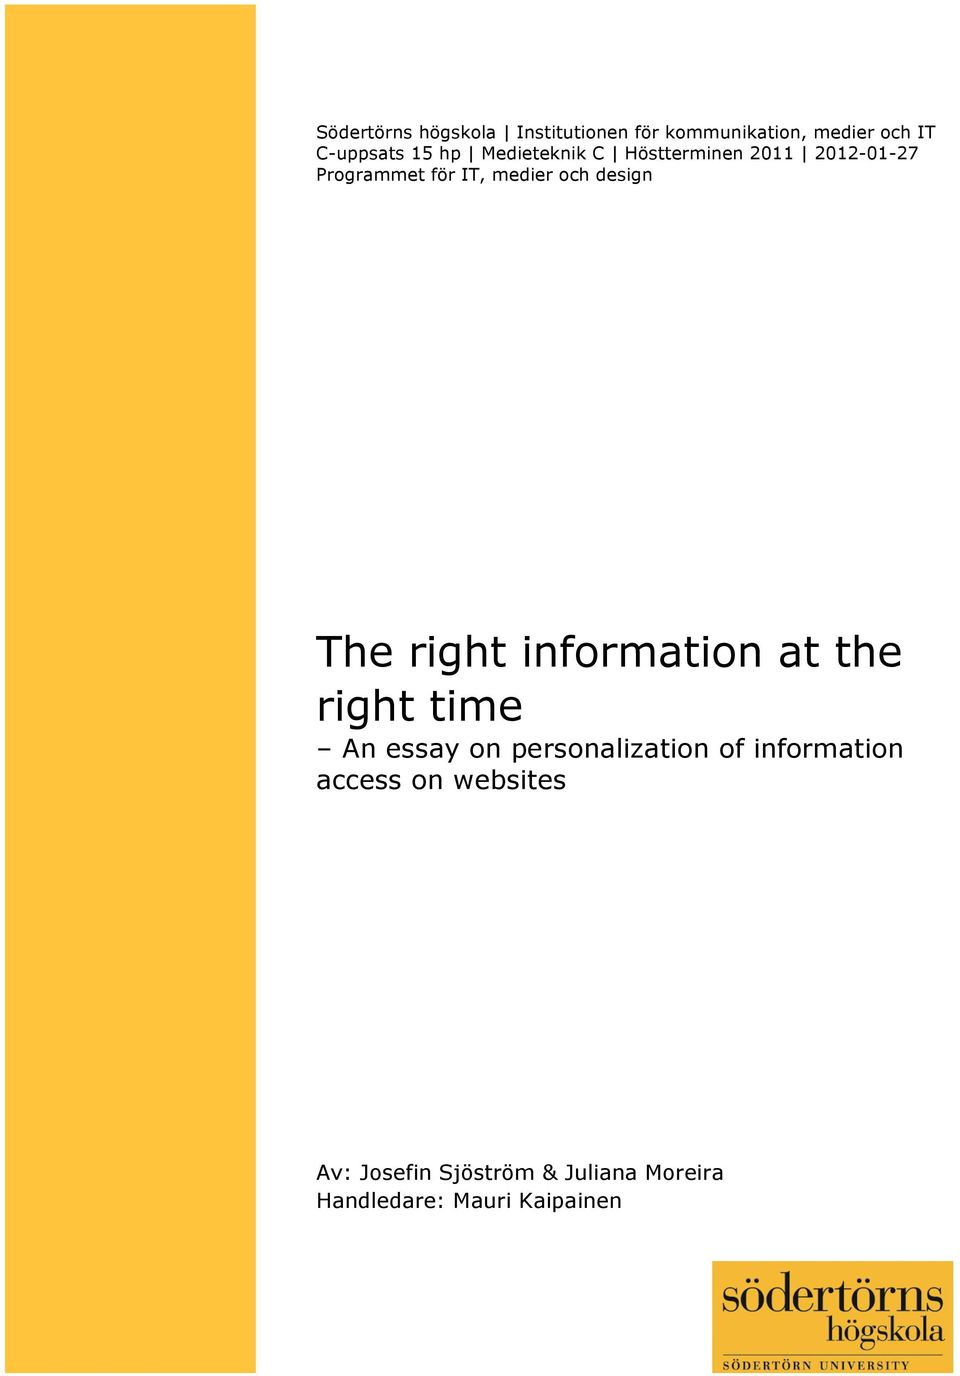 The right information at the right time An essay on personalization of information